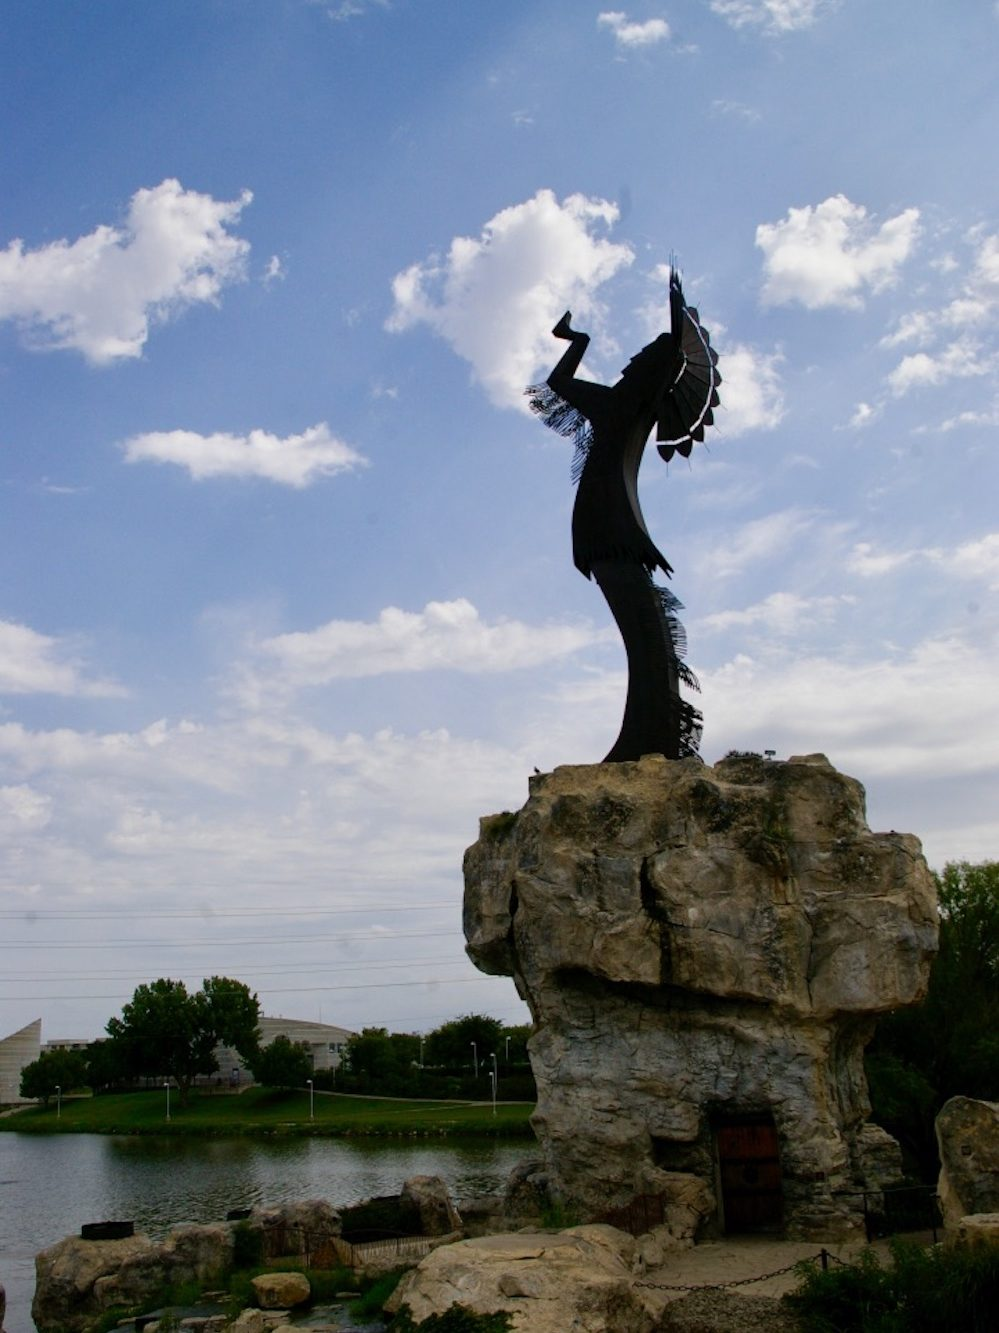 Large metal sculpture of a Native American warrior known as the Keeper of the Plains at the confluence of the Arkansas and Little Arkansas rivers in Wichita, Kansas